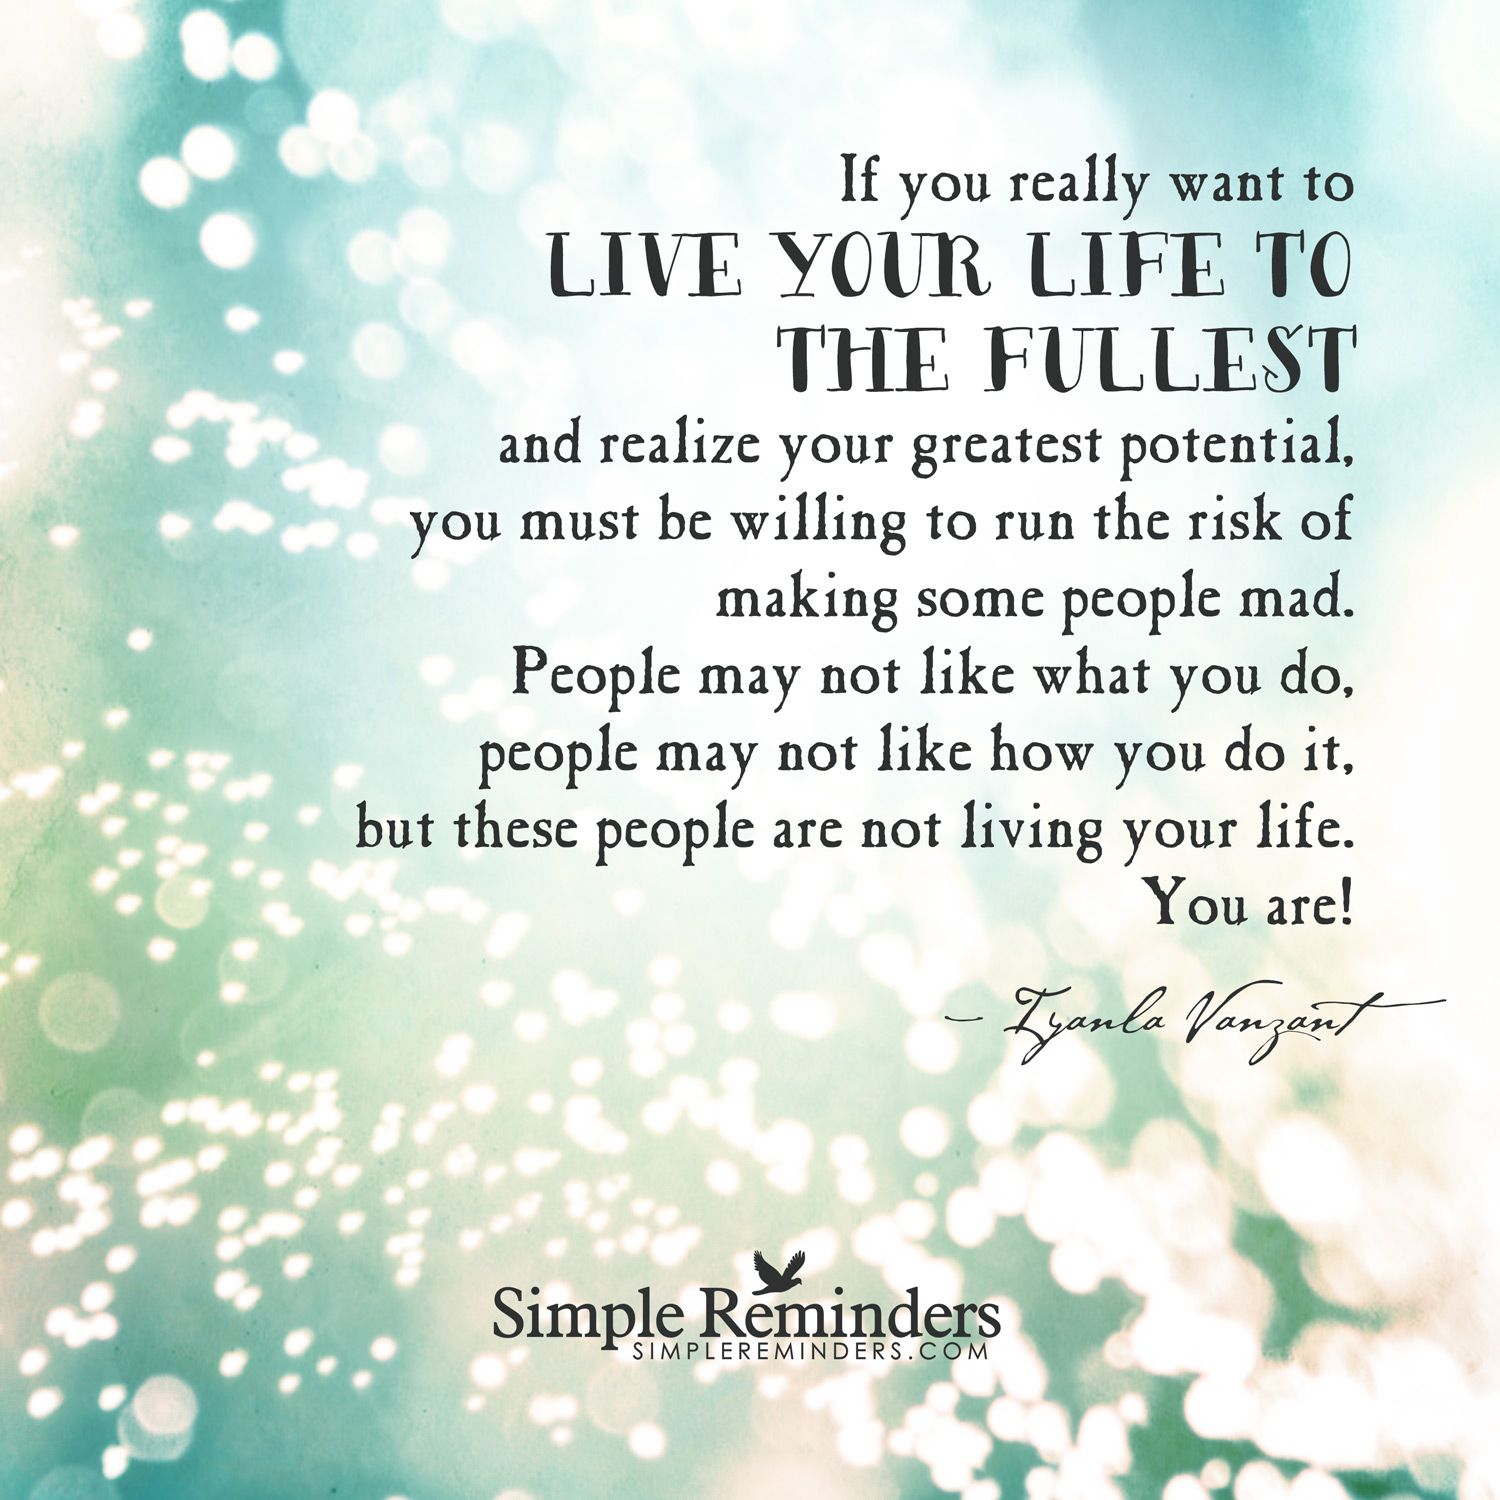 Live Your Life Crazy Quotes: Be Willing To Make People Mad By Iyanla Vanzant, To Be